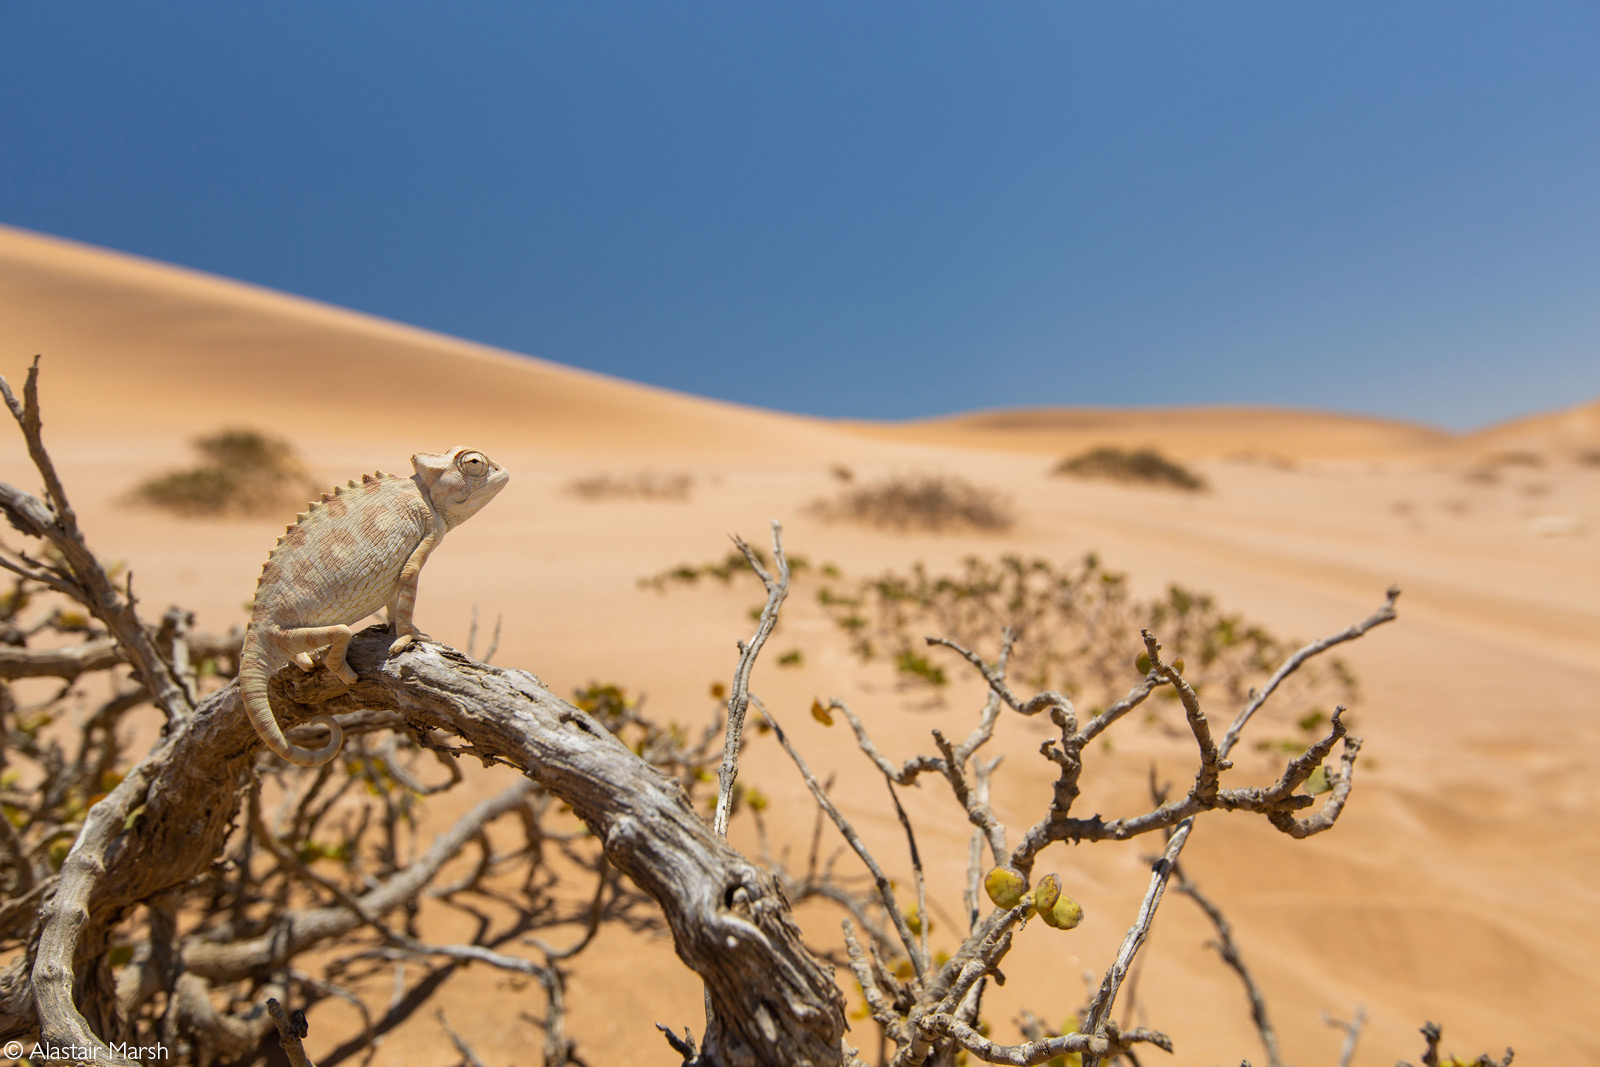 A Namaqua chameleon surveying its surroundings in the Namib Desert. Near Swakopmund, Namibia © Alastair Marsh